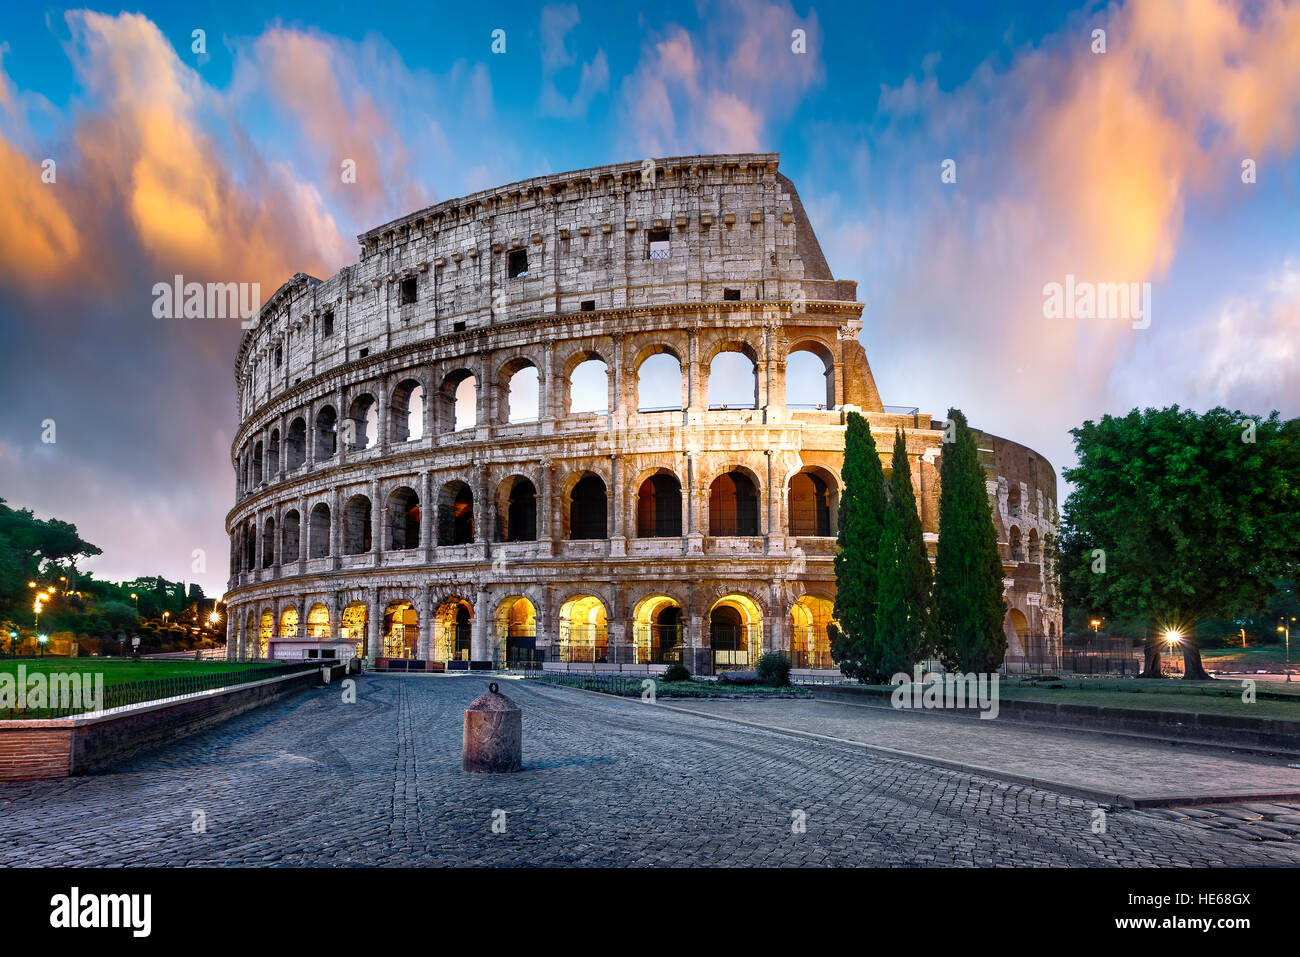 Colosseum in Rome at sunset with lights, Italy - Stock Image